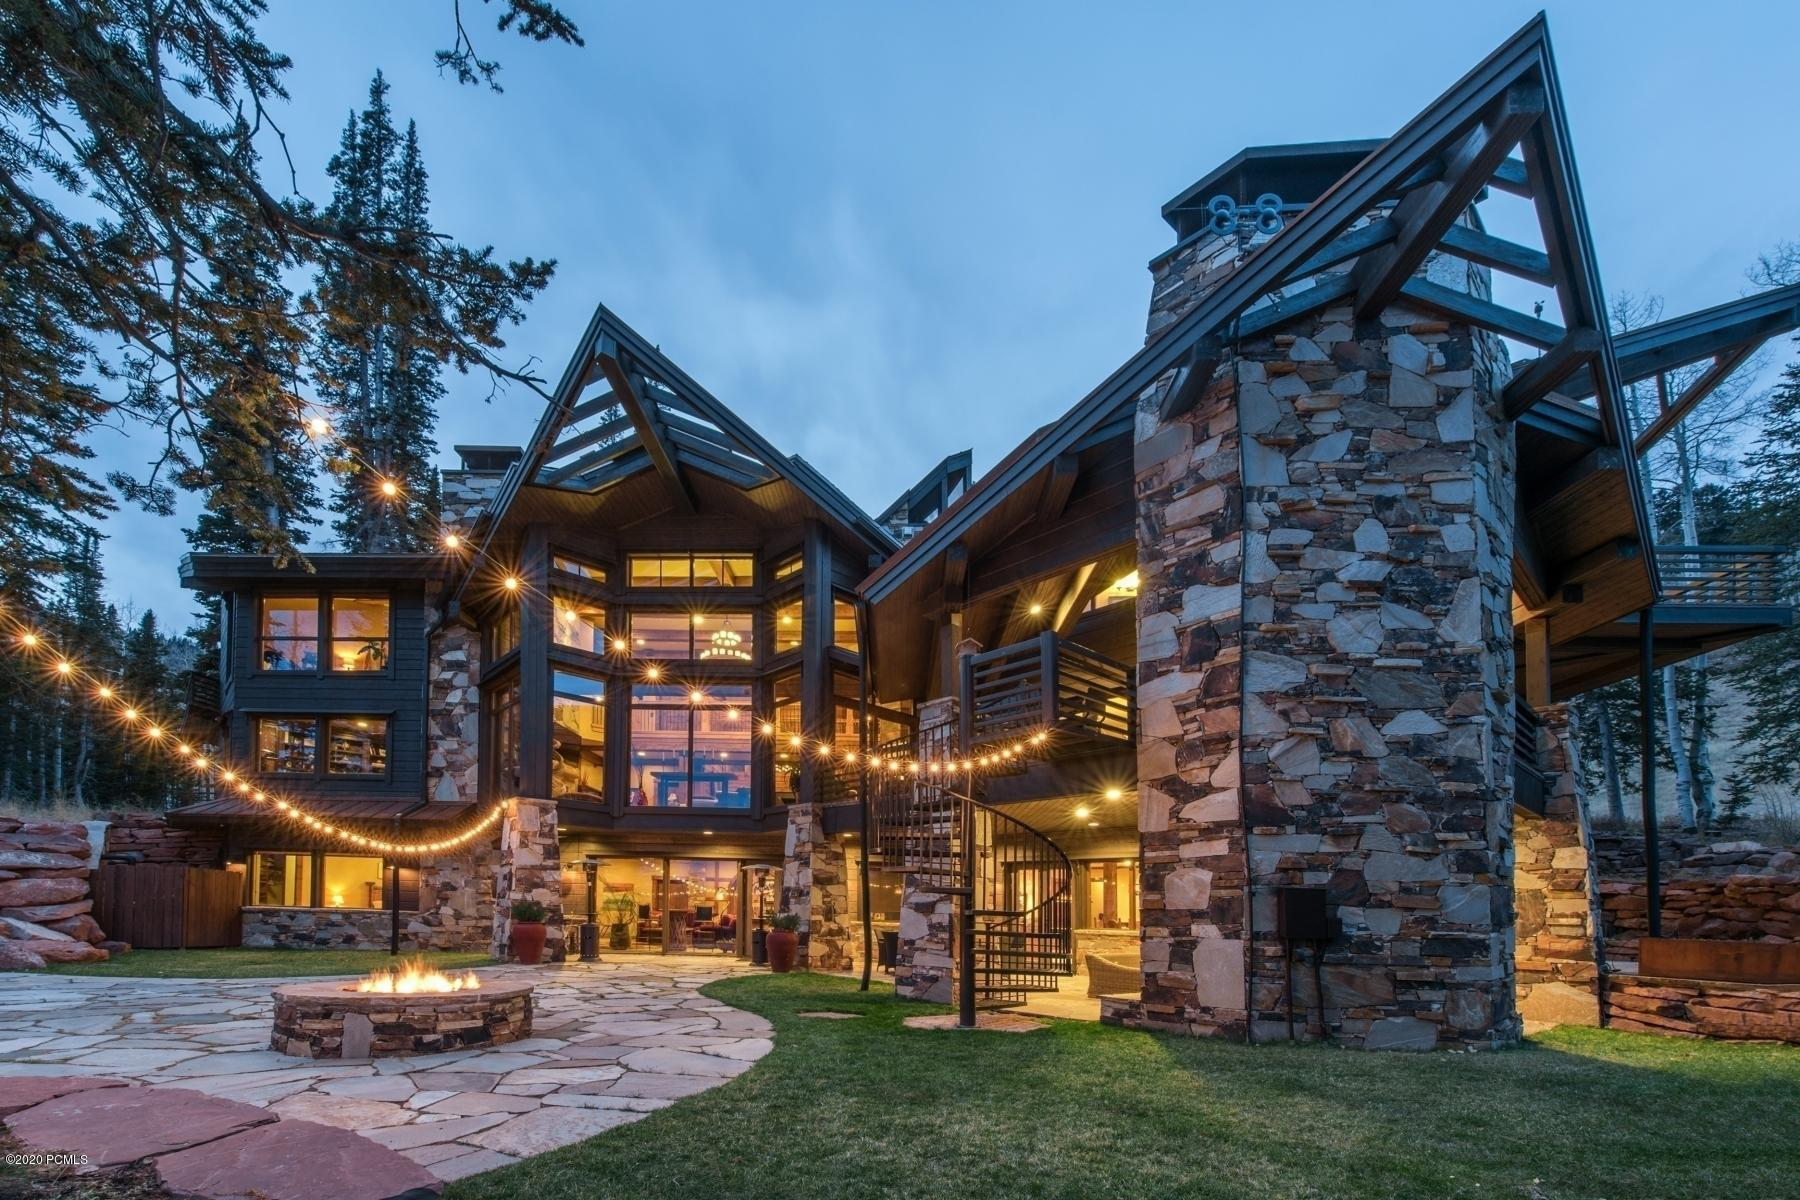 116 White Pine Canyon Road, Park City, Utah 84060, 7 Bedrooms Bedrooms, ,9 BathroomsBathrooms,Single Family,For Sale,White Pine Canyon,20190109112430415765000000